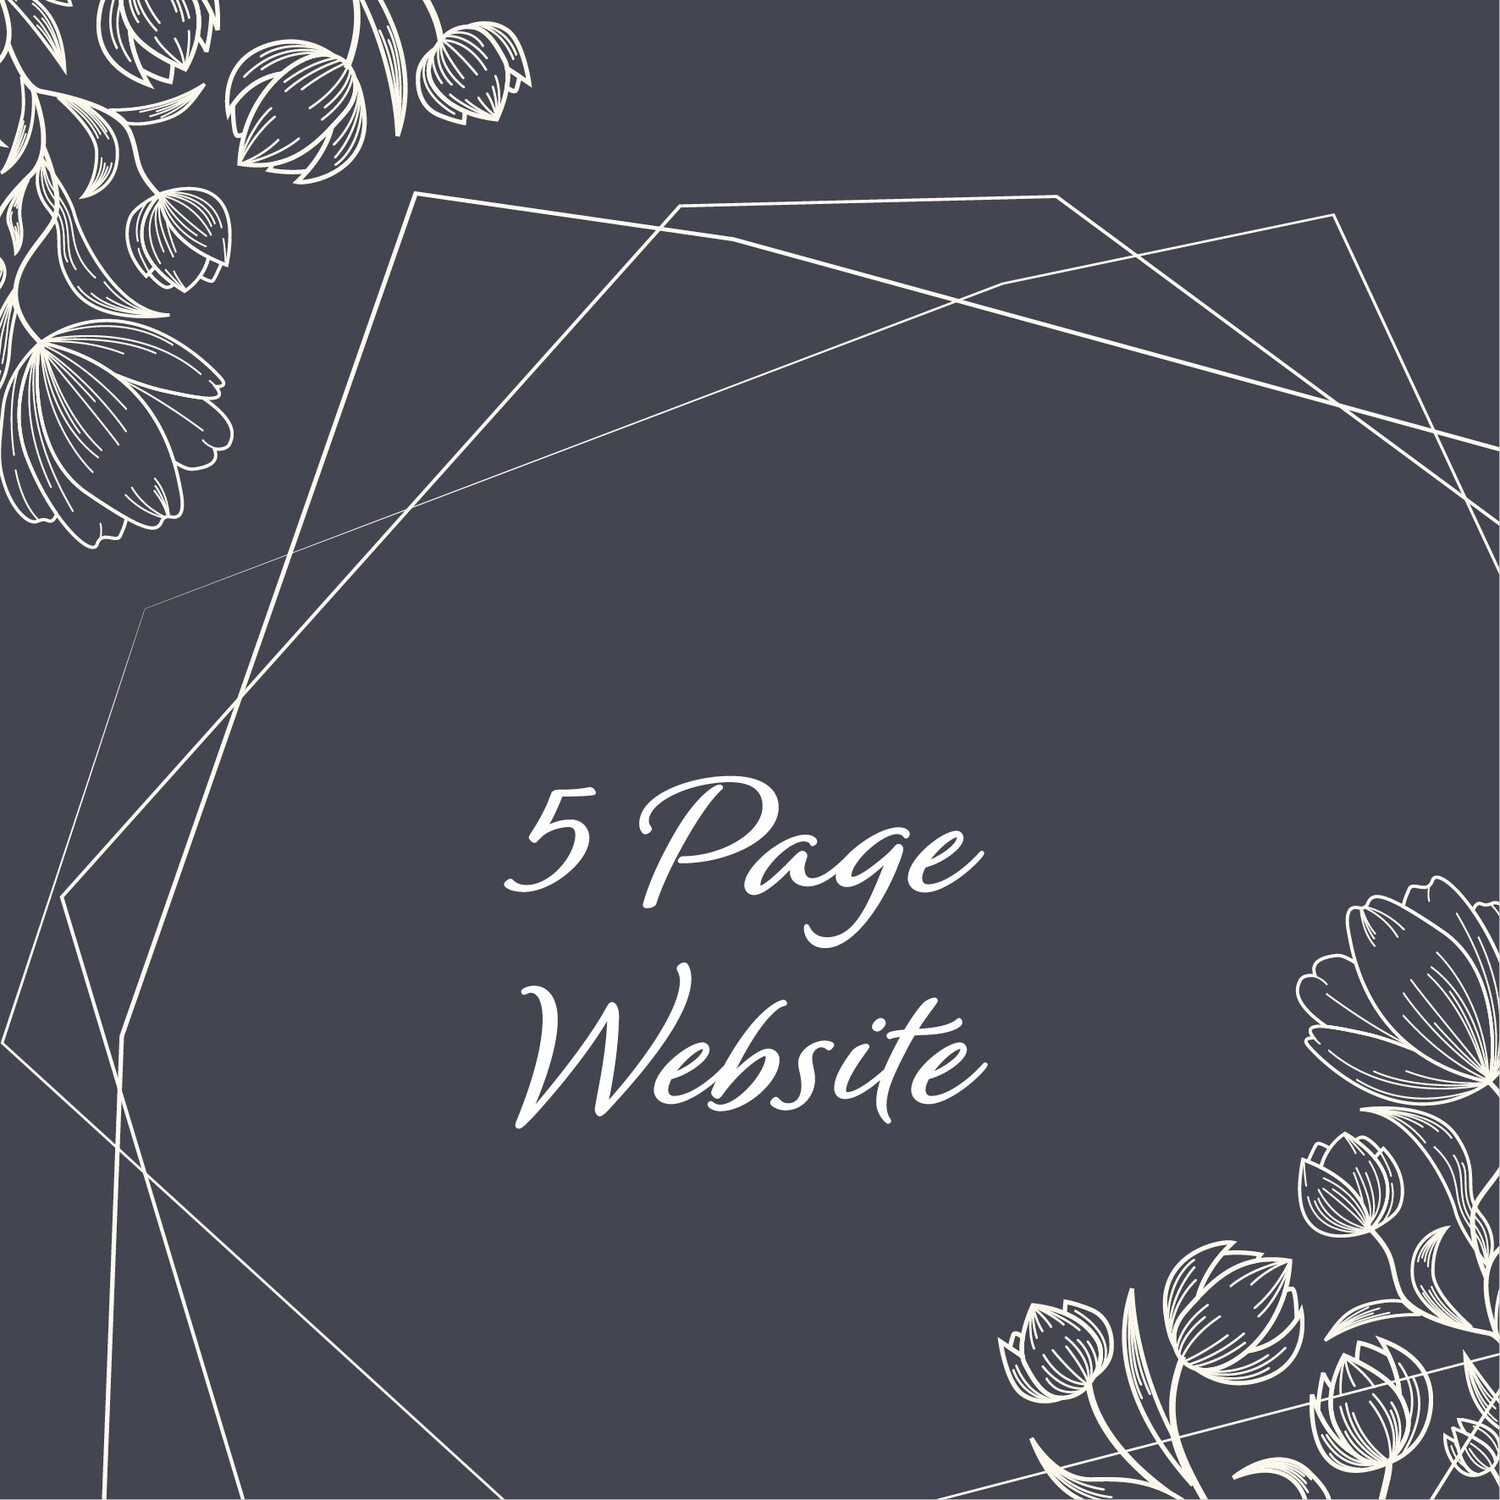 5 Page Website